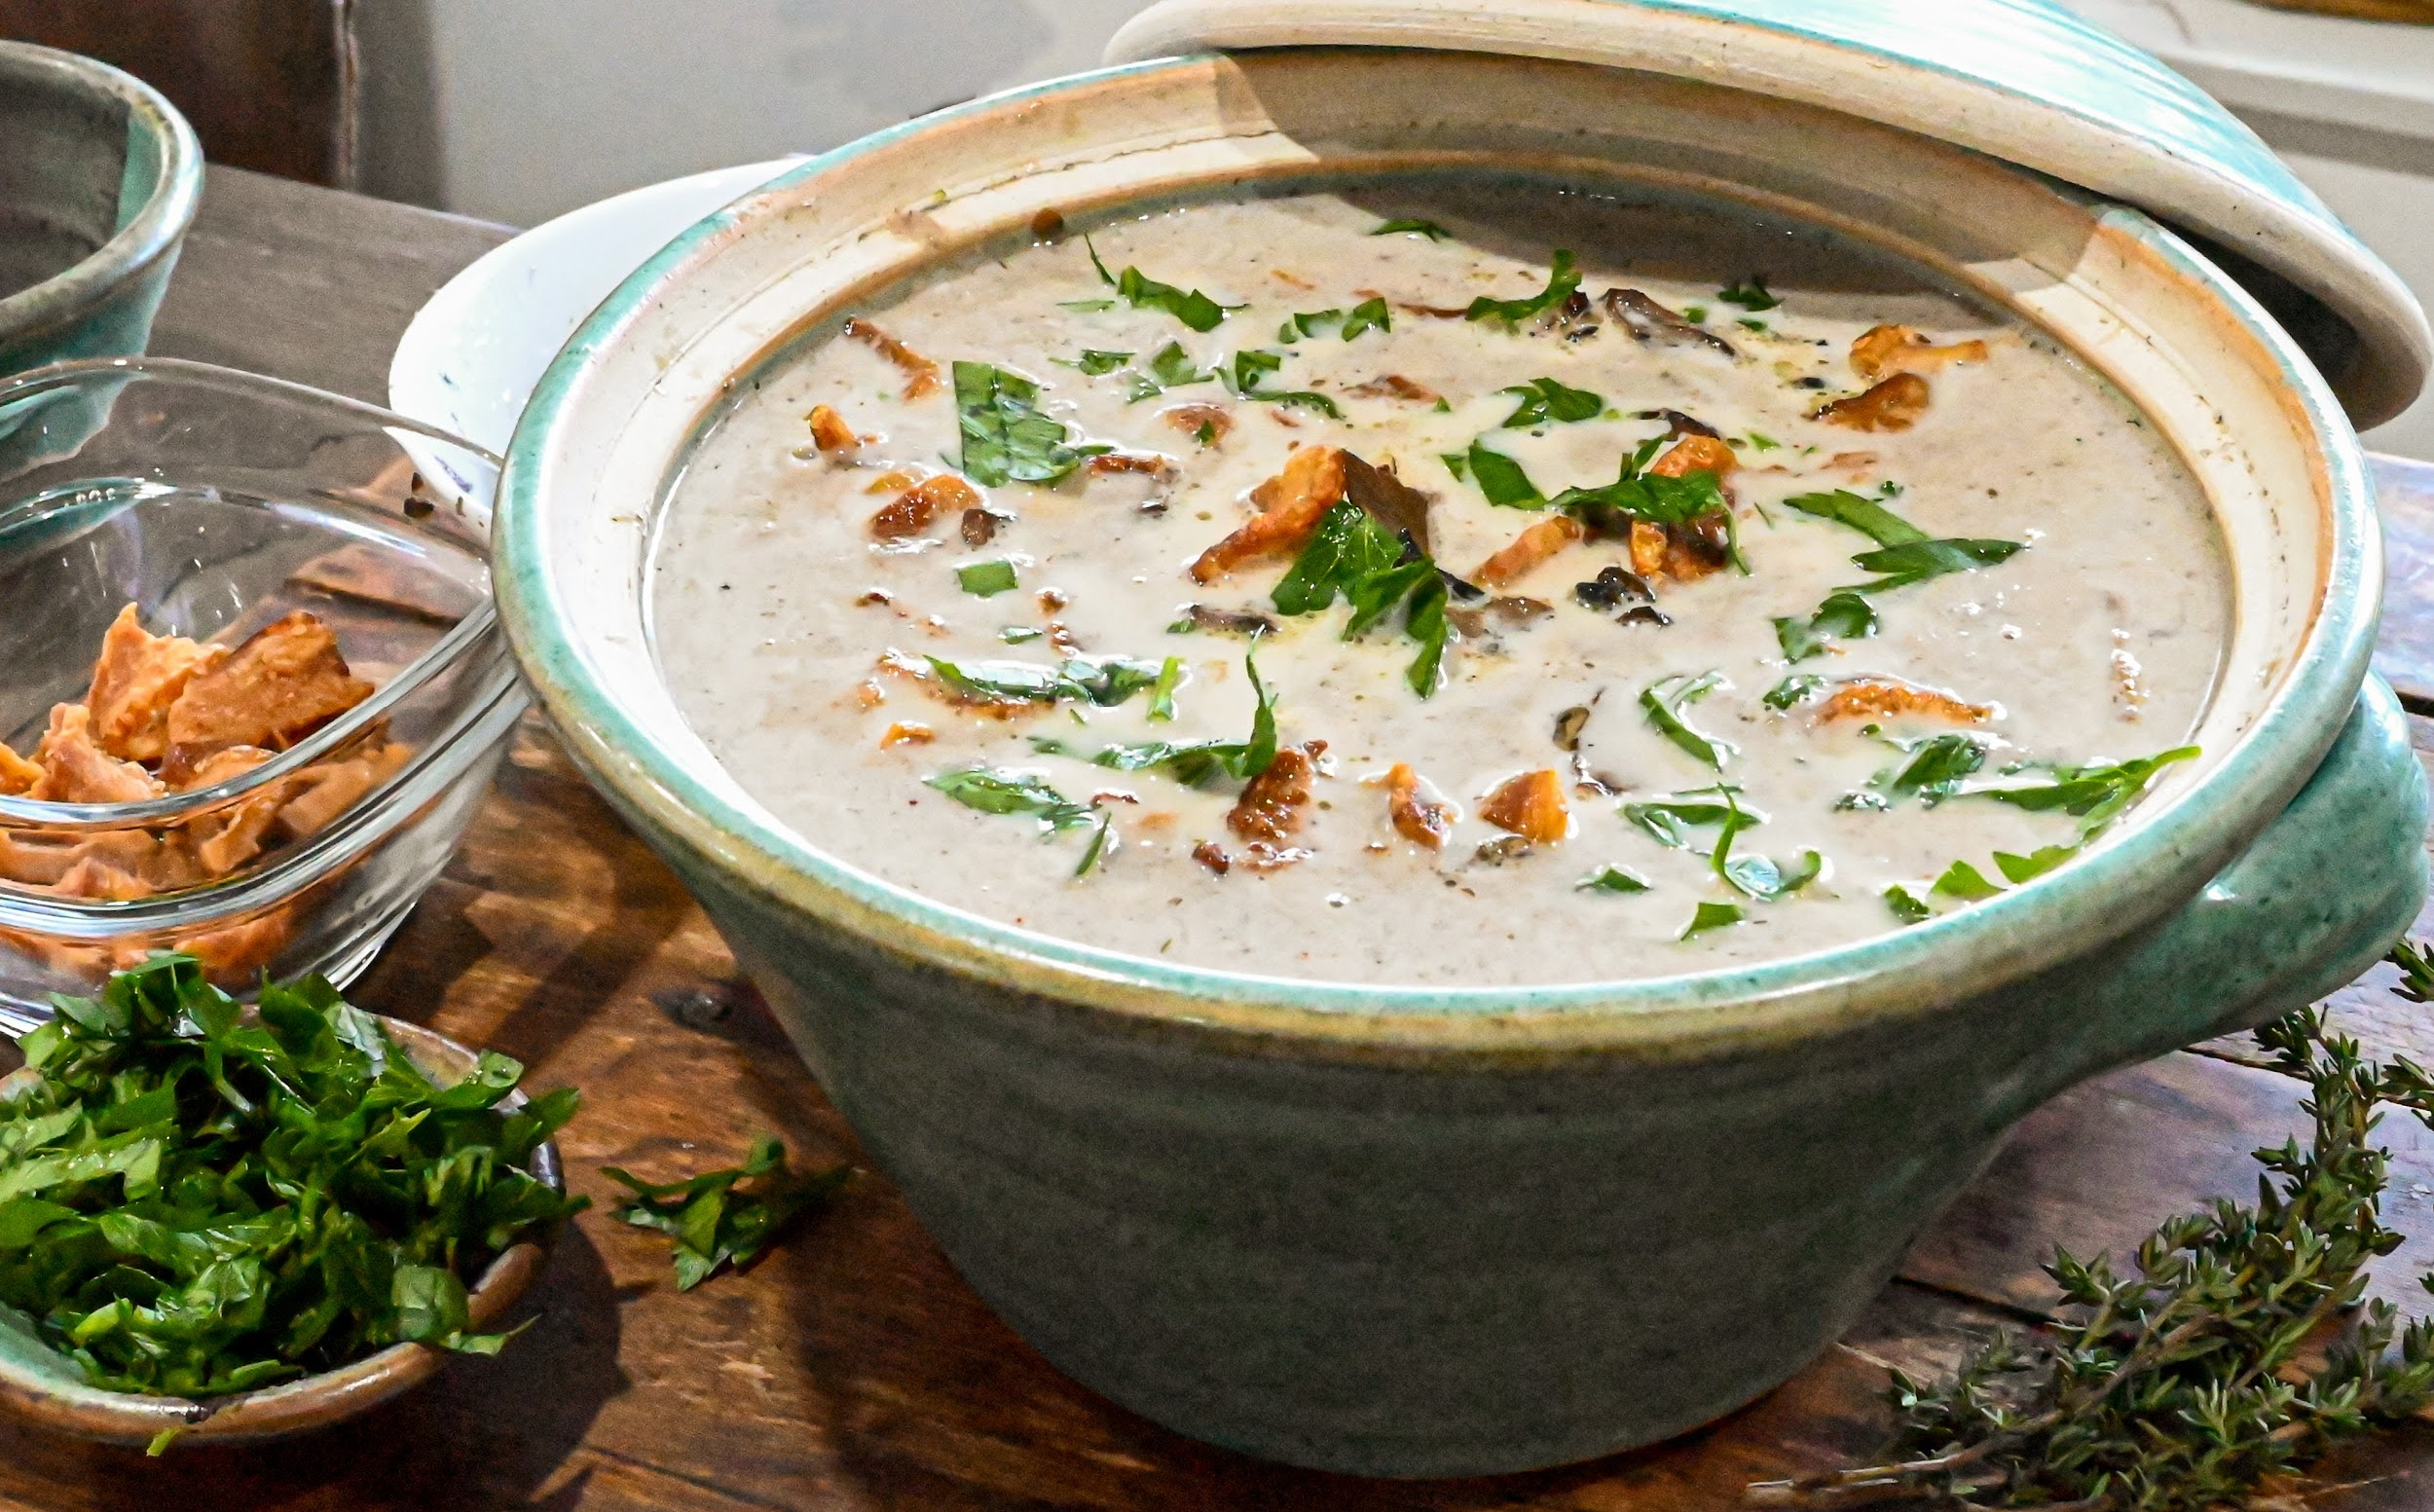 keto mushroom soup in a teal soup tureen ready to serve